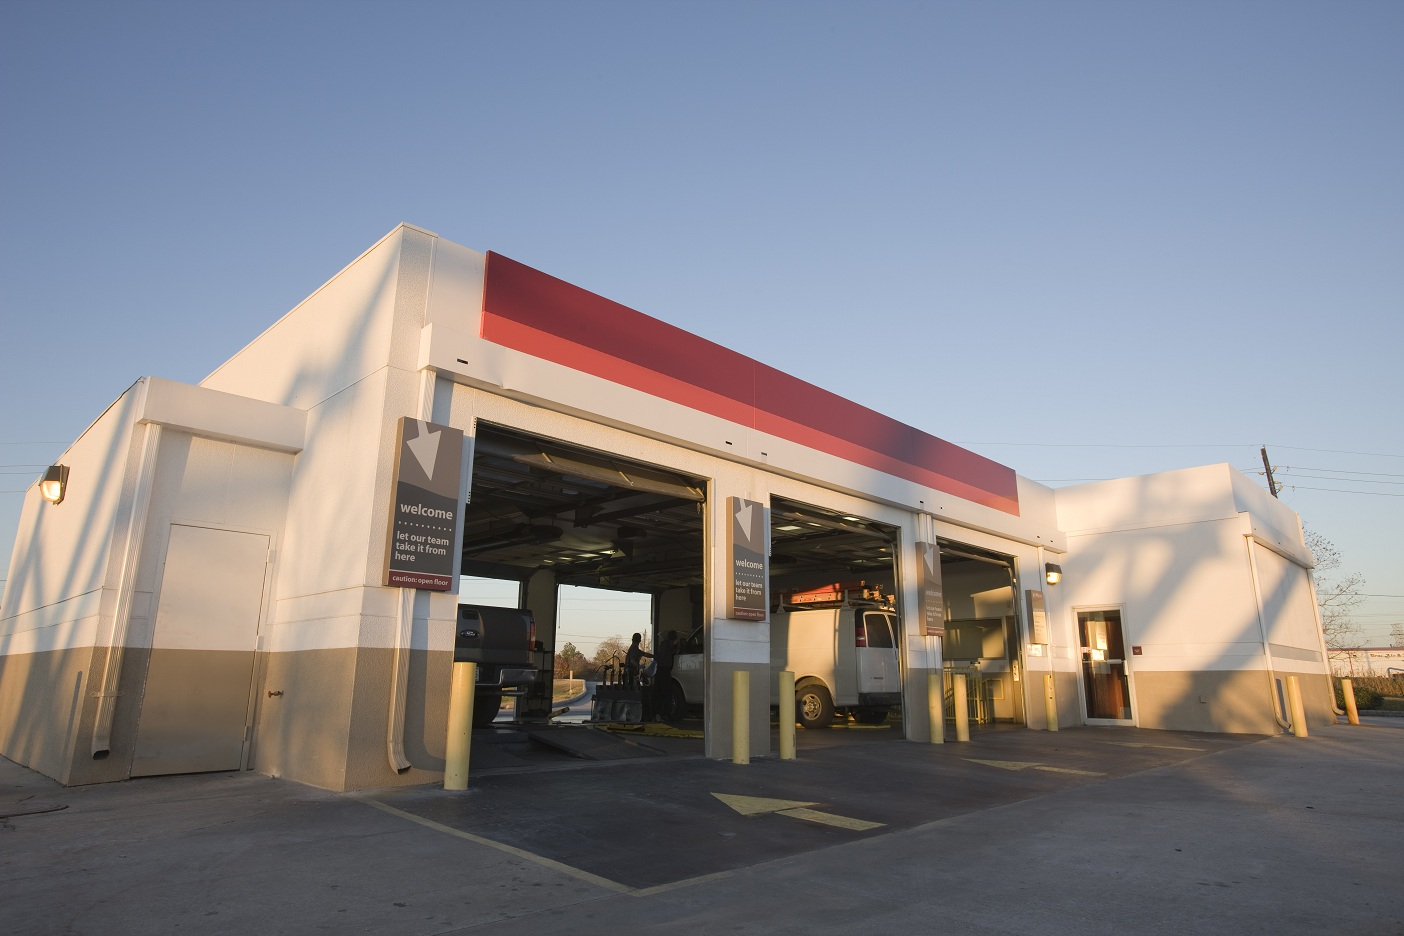 Jiffy Lube in Camarillo, CA